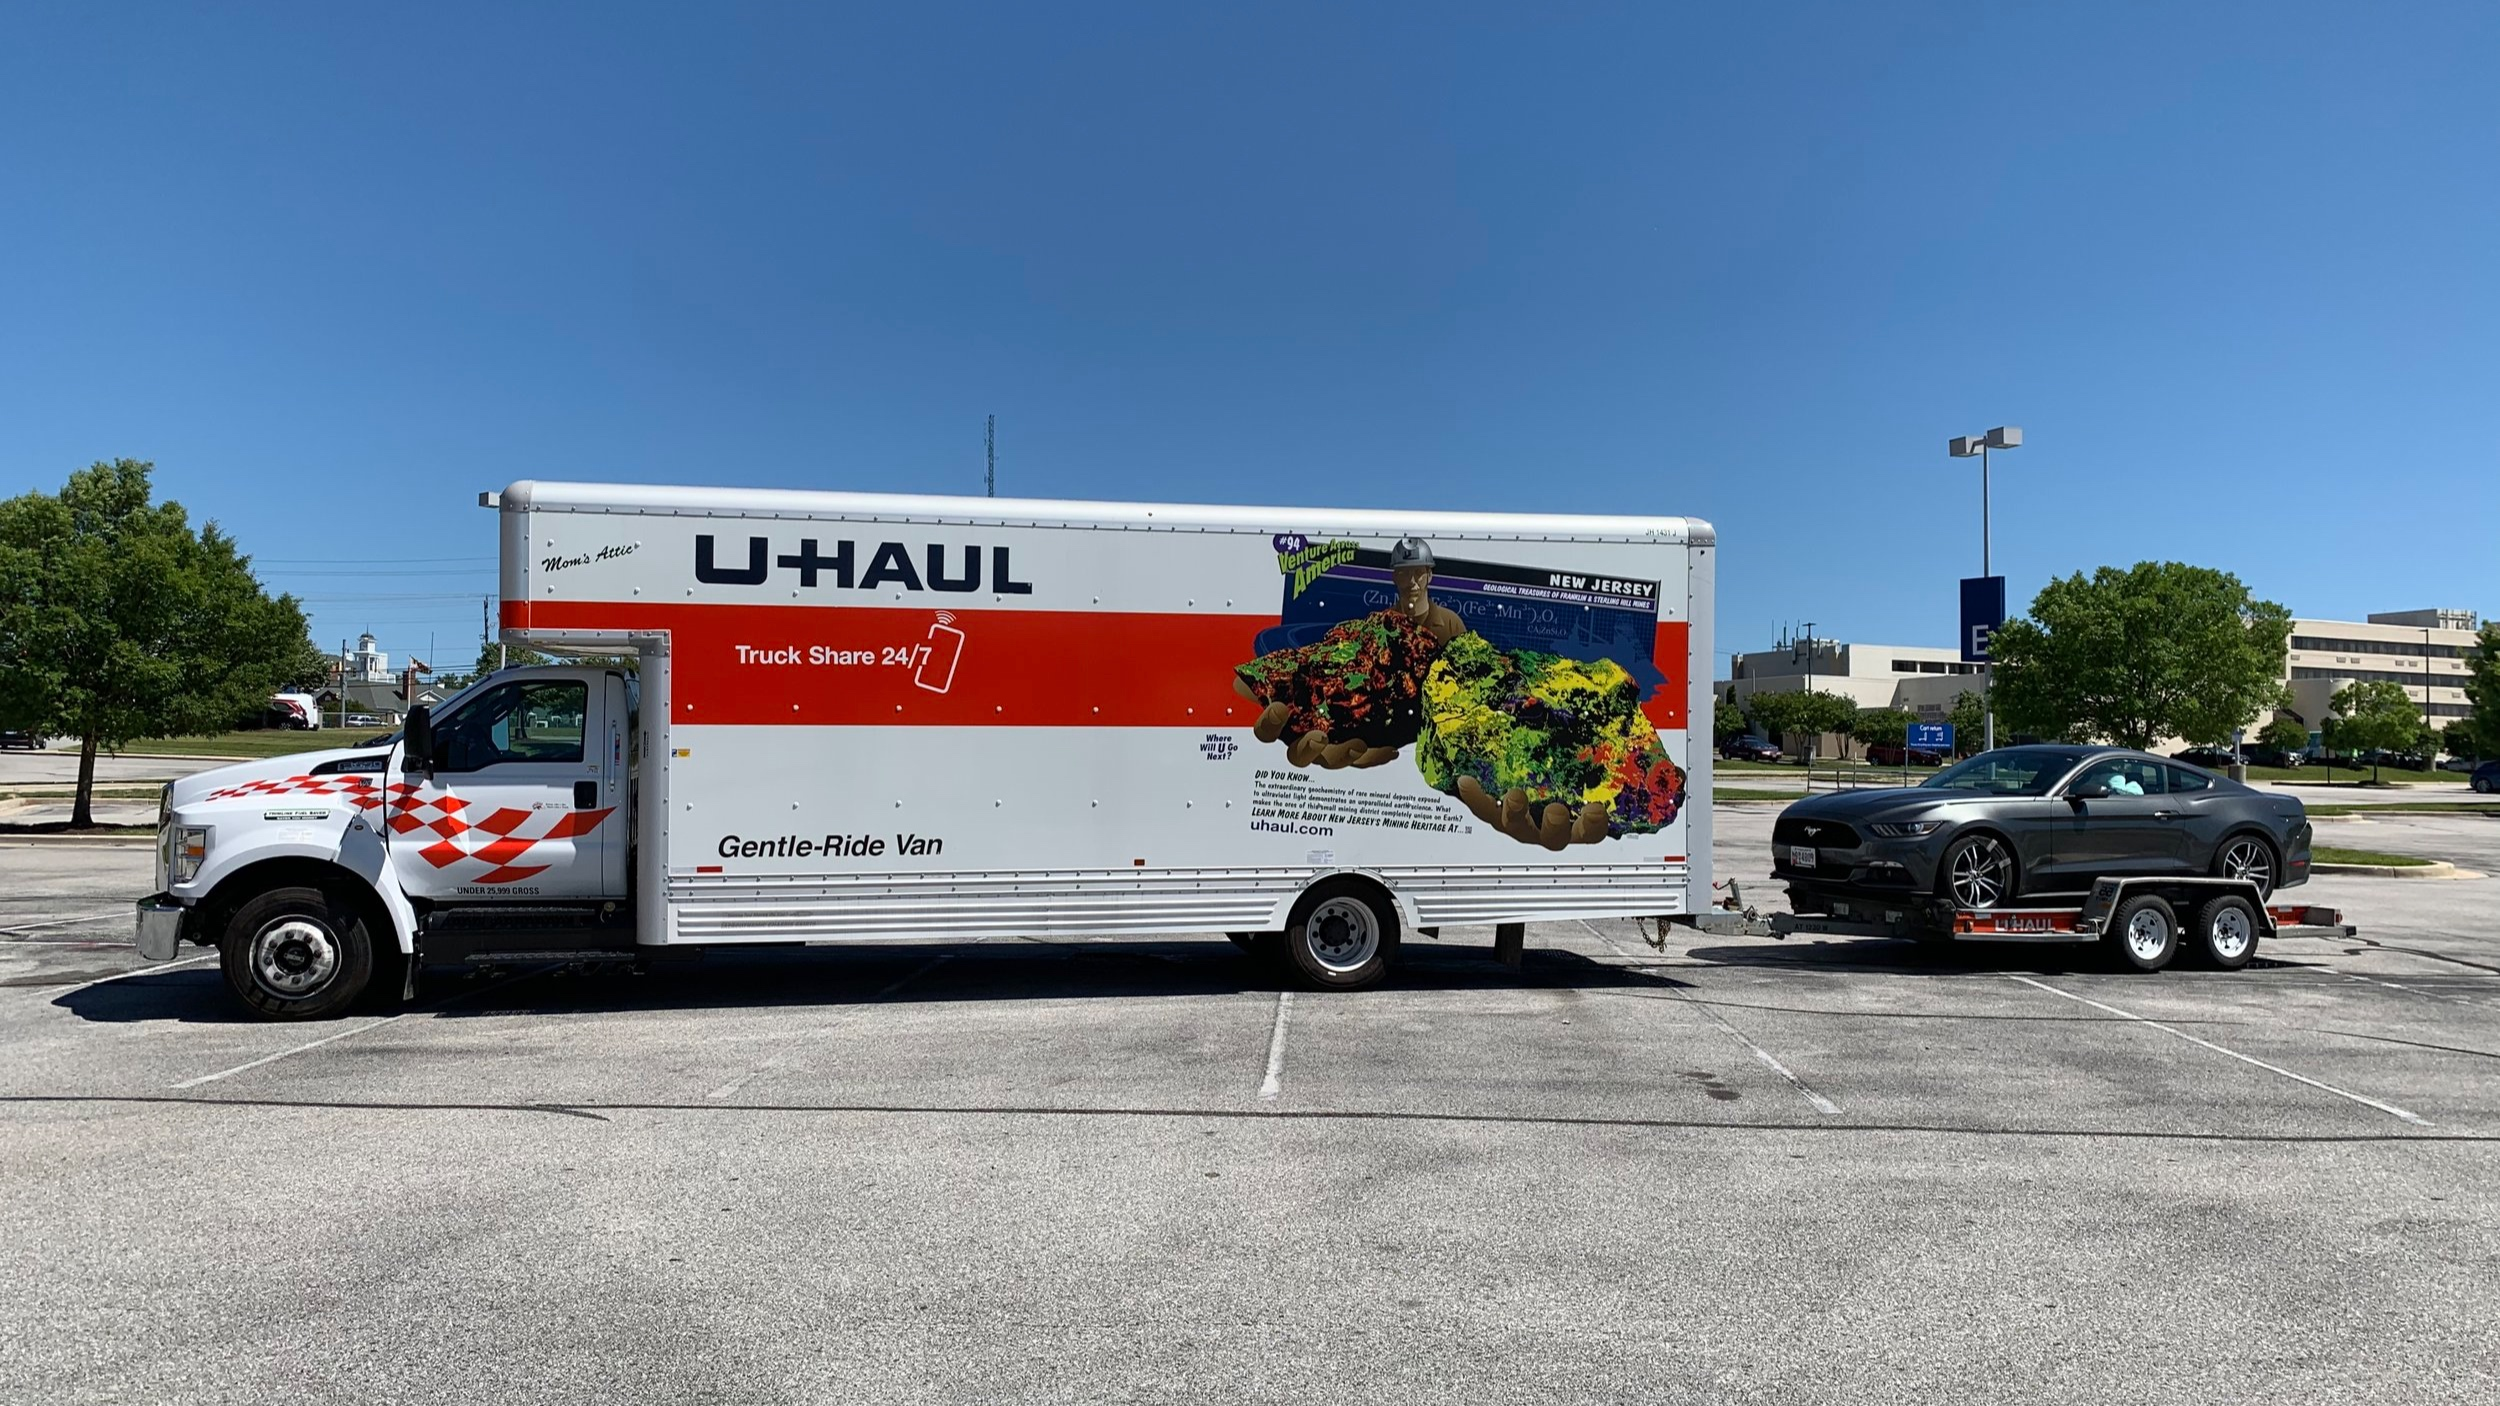 We unfortunately moved at the most expensive time of the year. We saved a lot of money on our move by driving a Uhaul instead of hiring a cross country service.